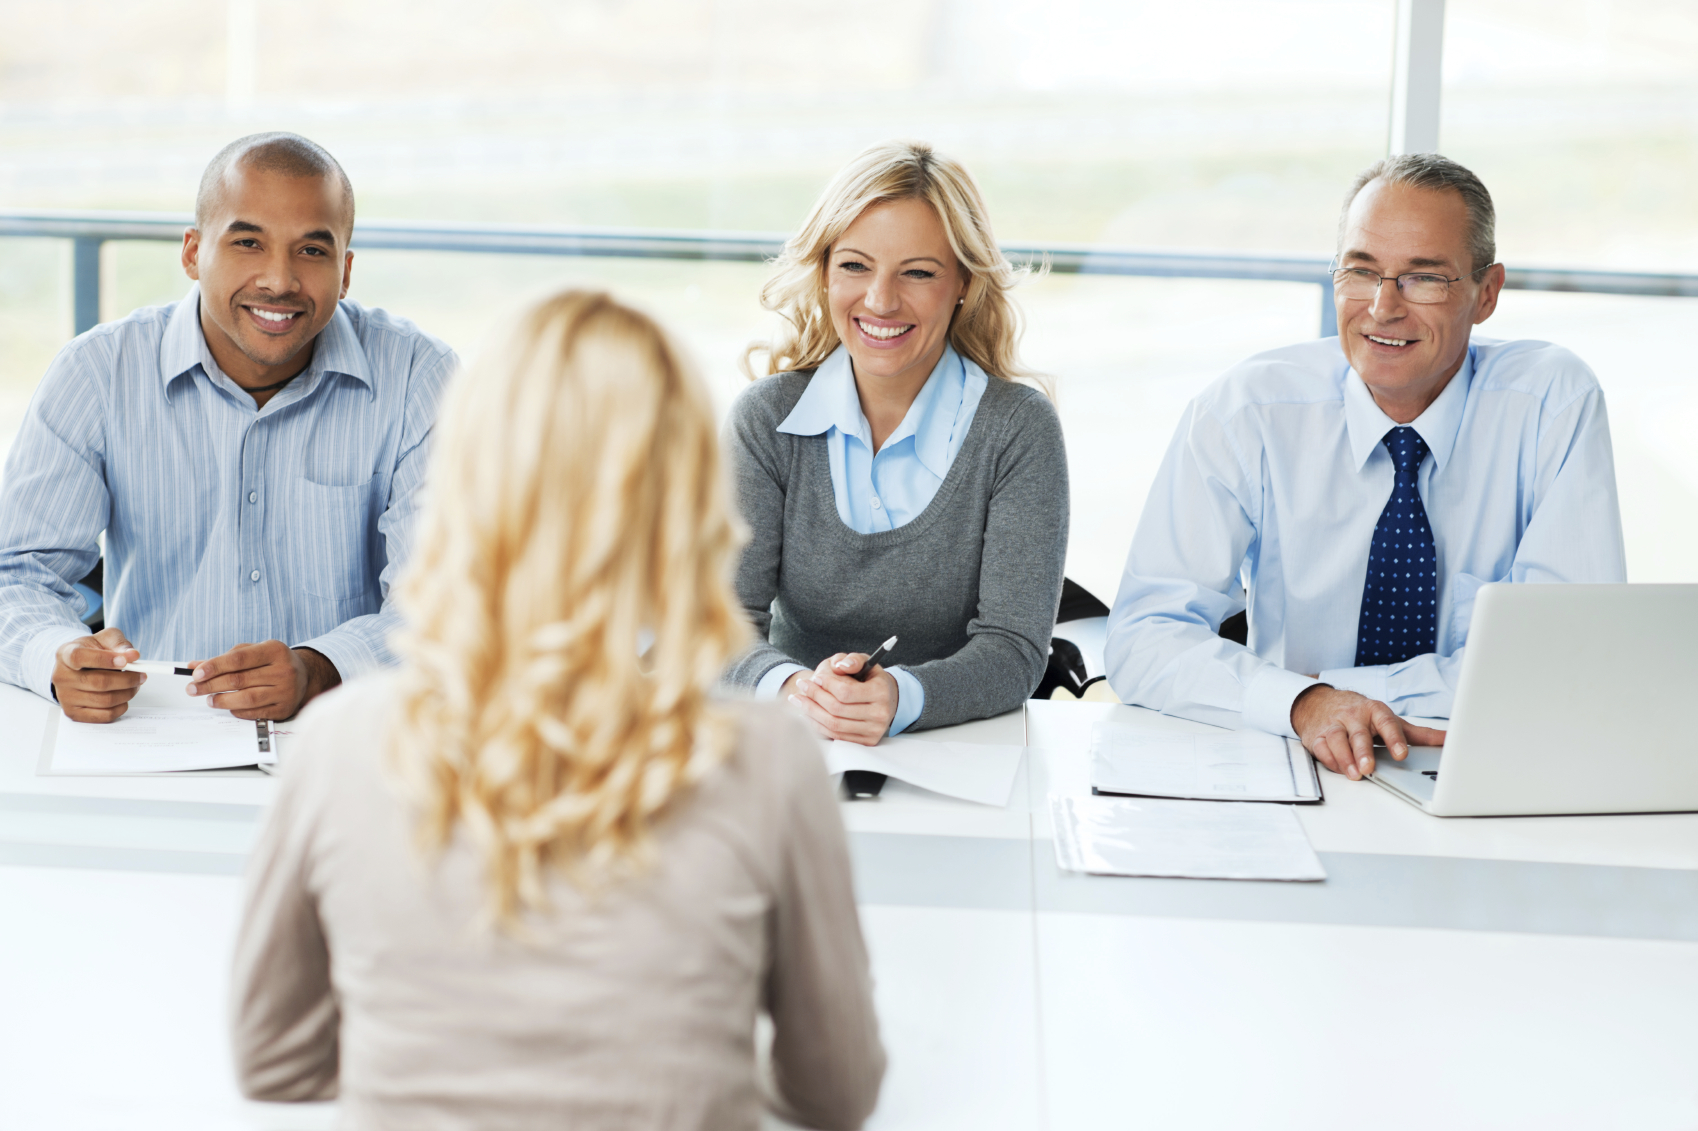 behavioral based interviewing coaching blog professional behavioral based interviewing